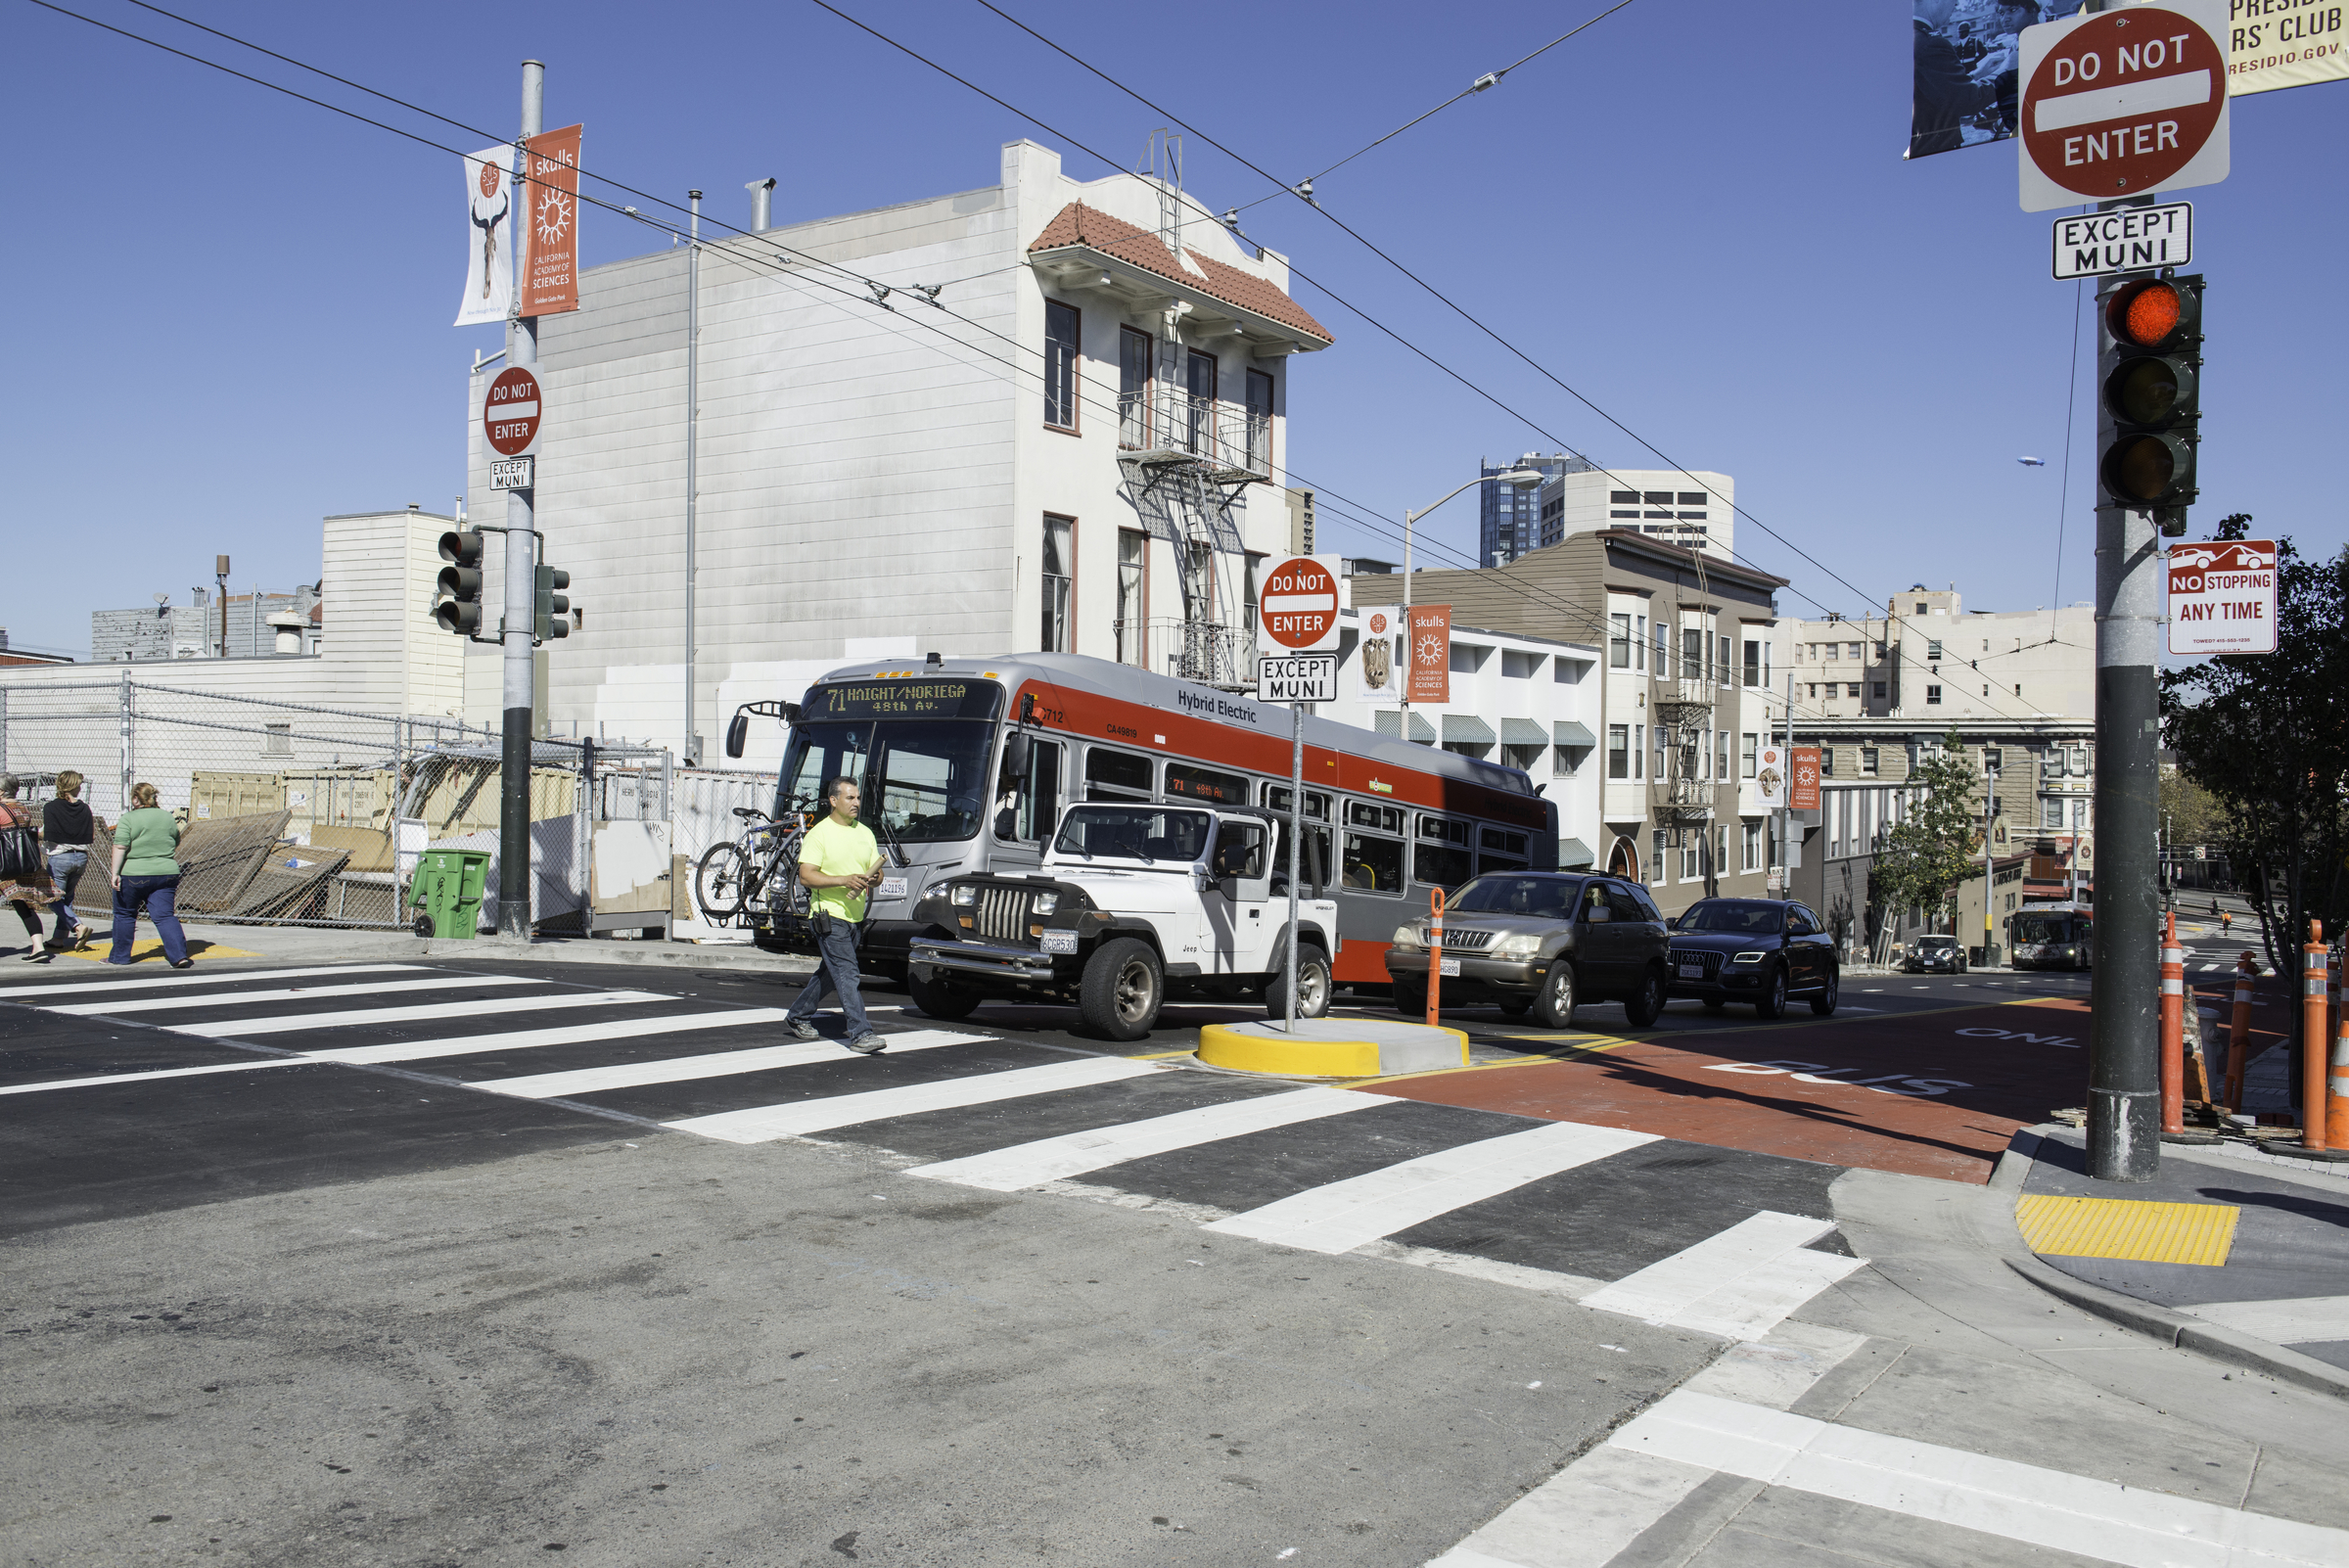 Muni reliability improvements on Haight Street